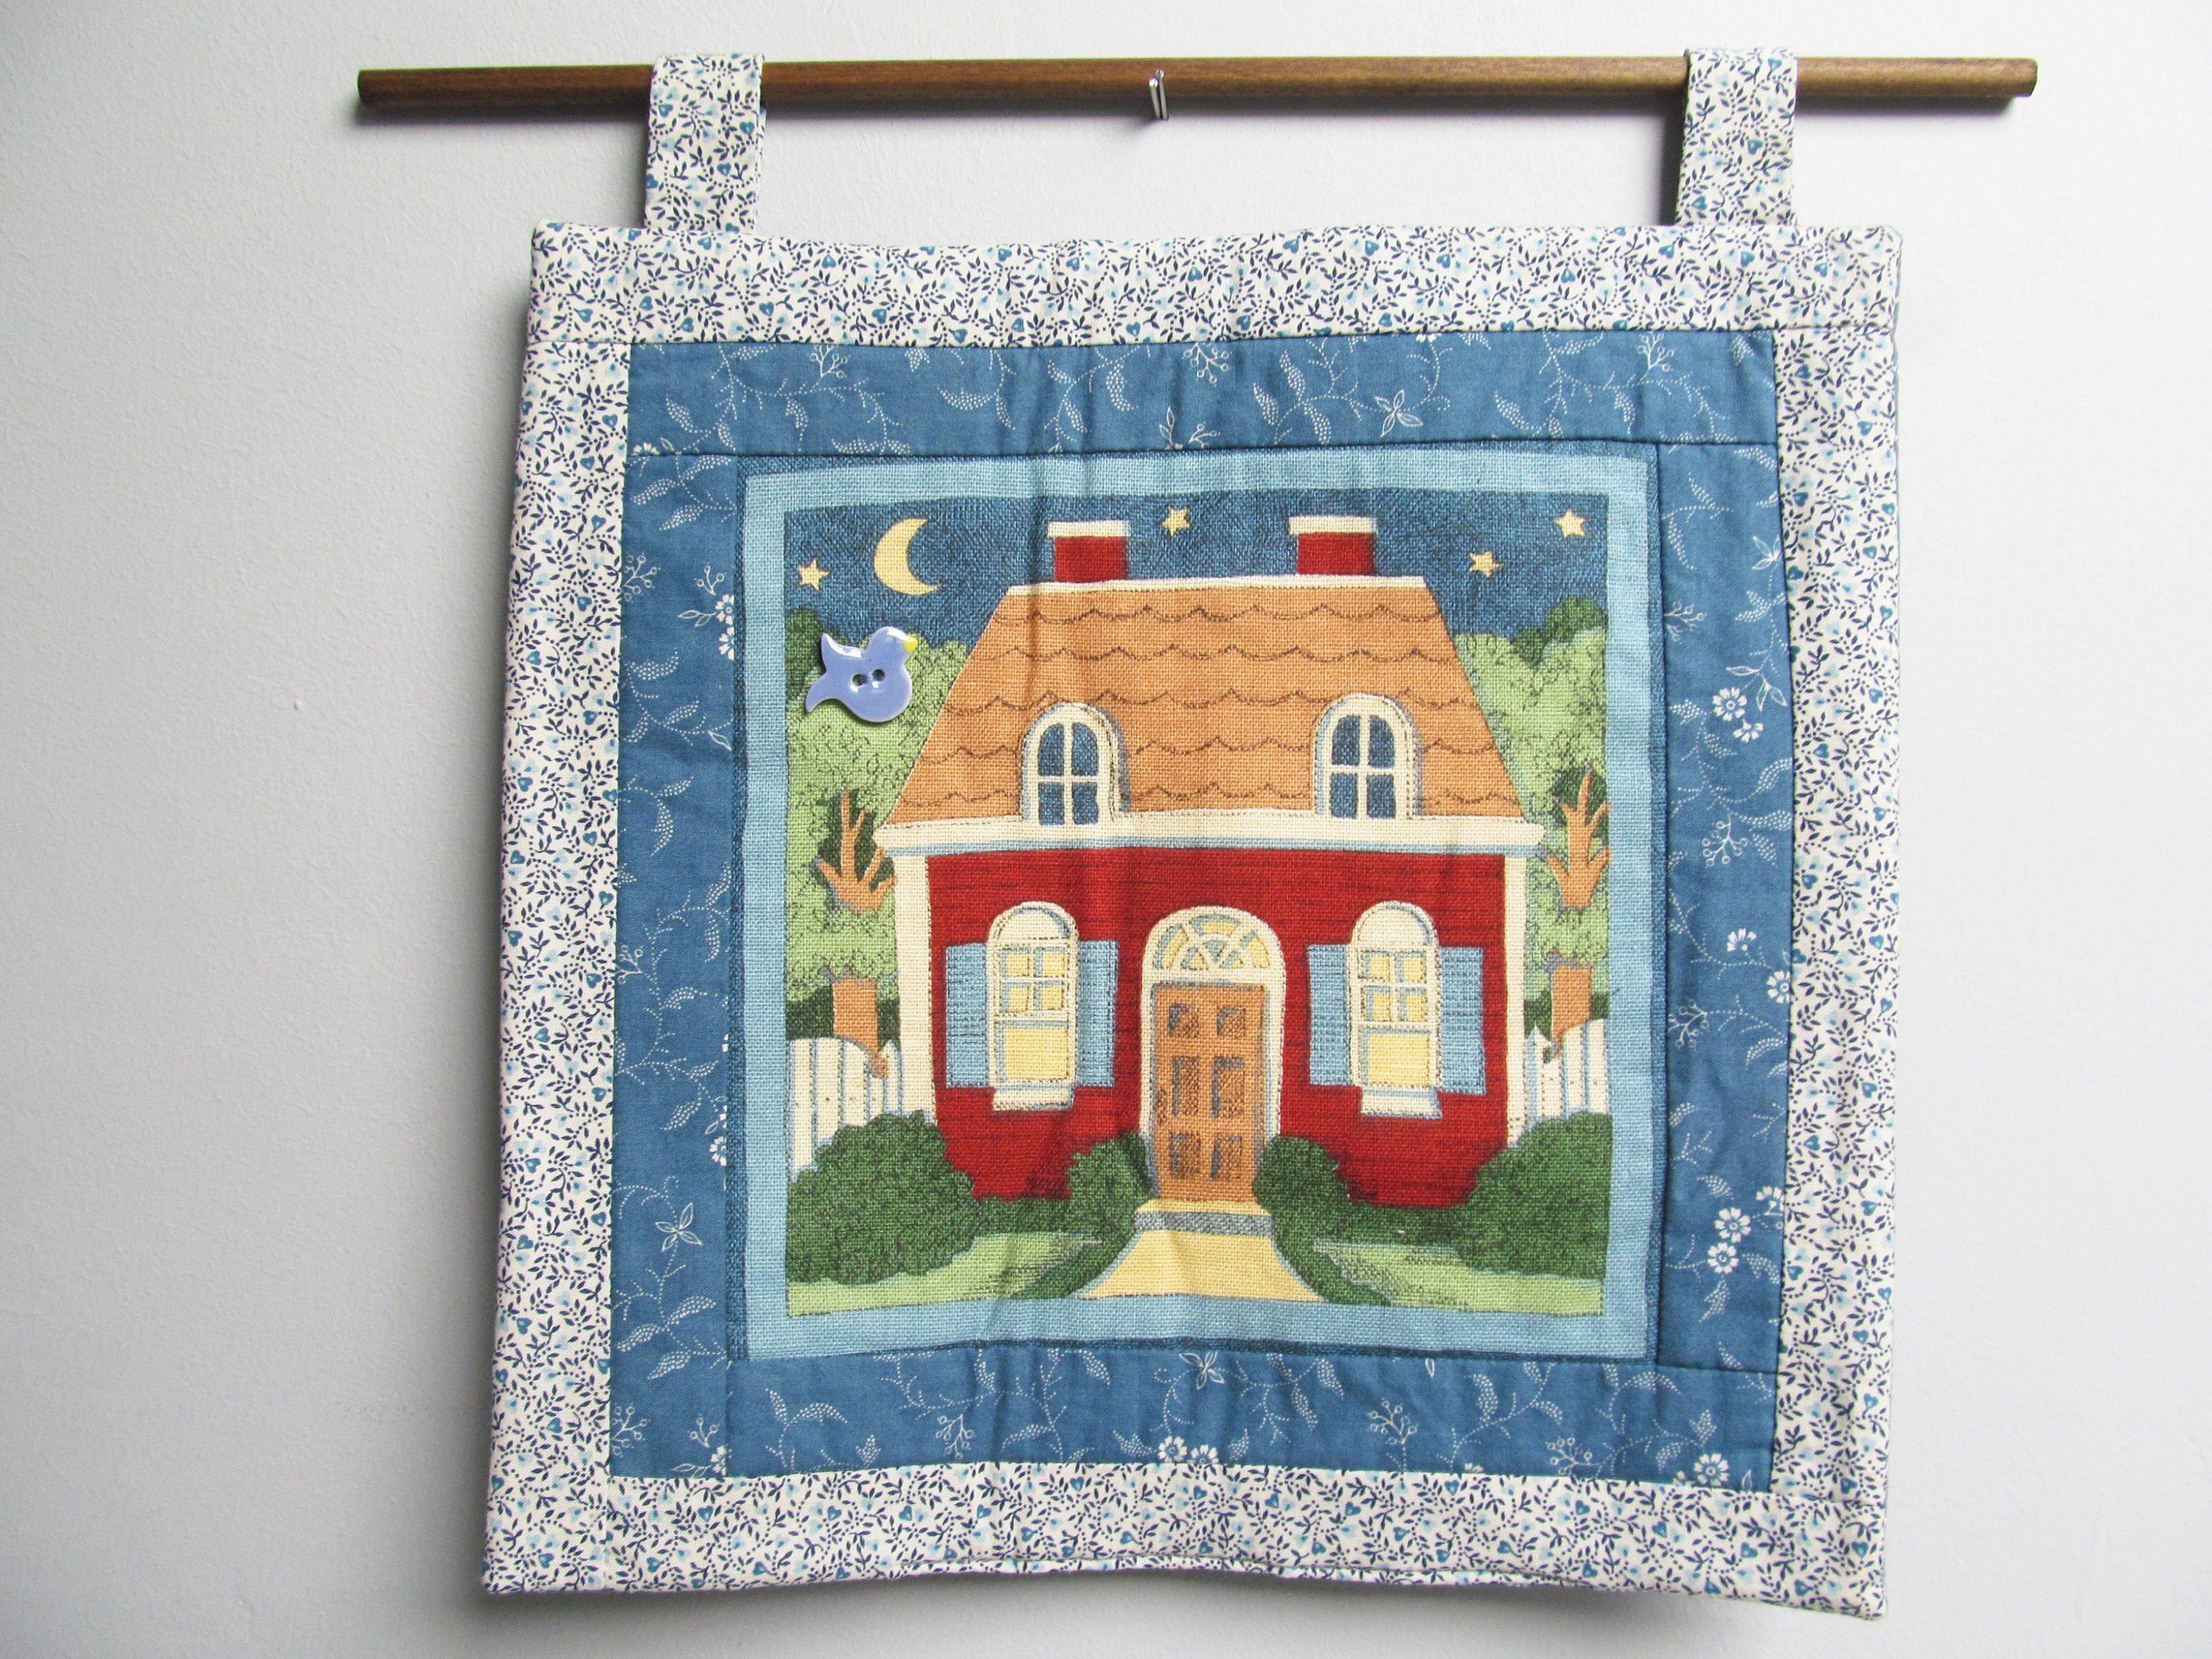 Vintage Quilt Wall hanging wall decoration quilt country rustic ...